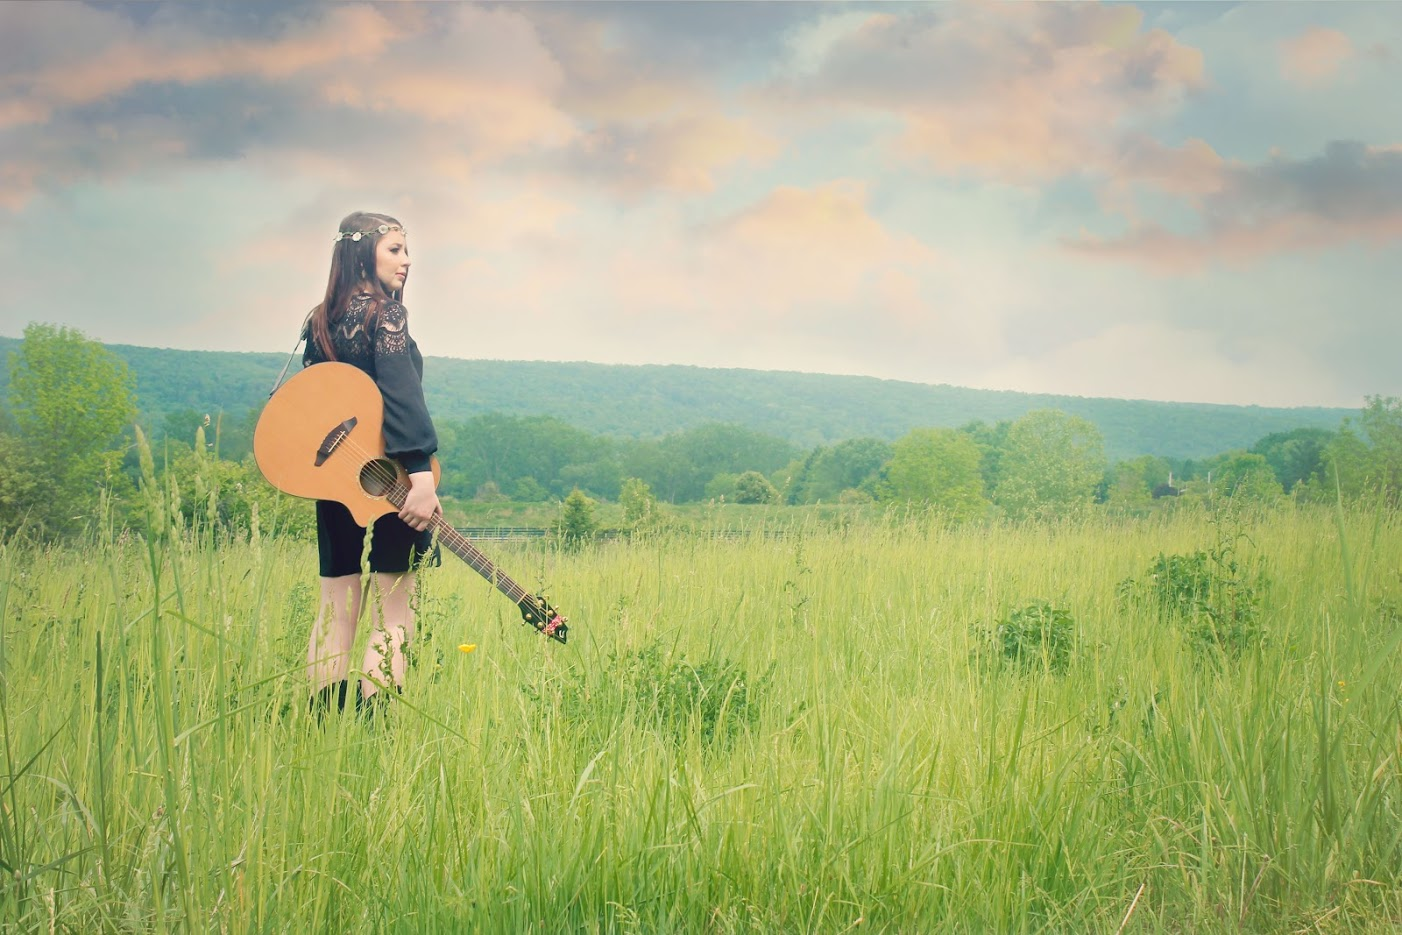 Acoustic & Indie Artist Jess Chizuk Shares How Fickle Music Business Is